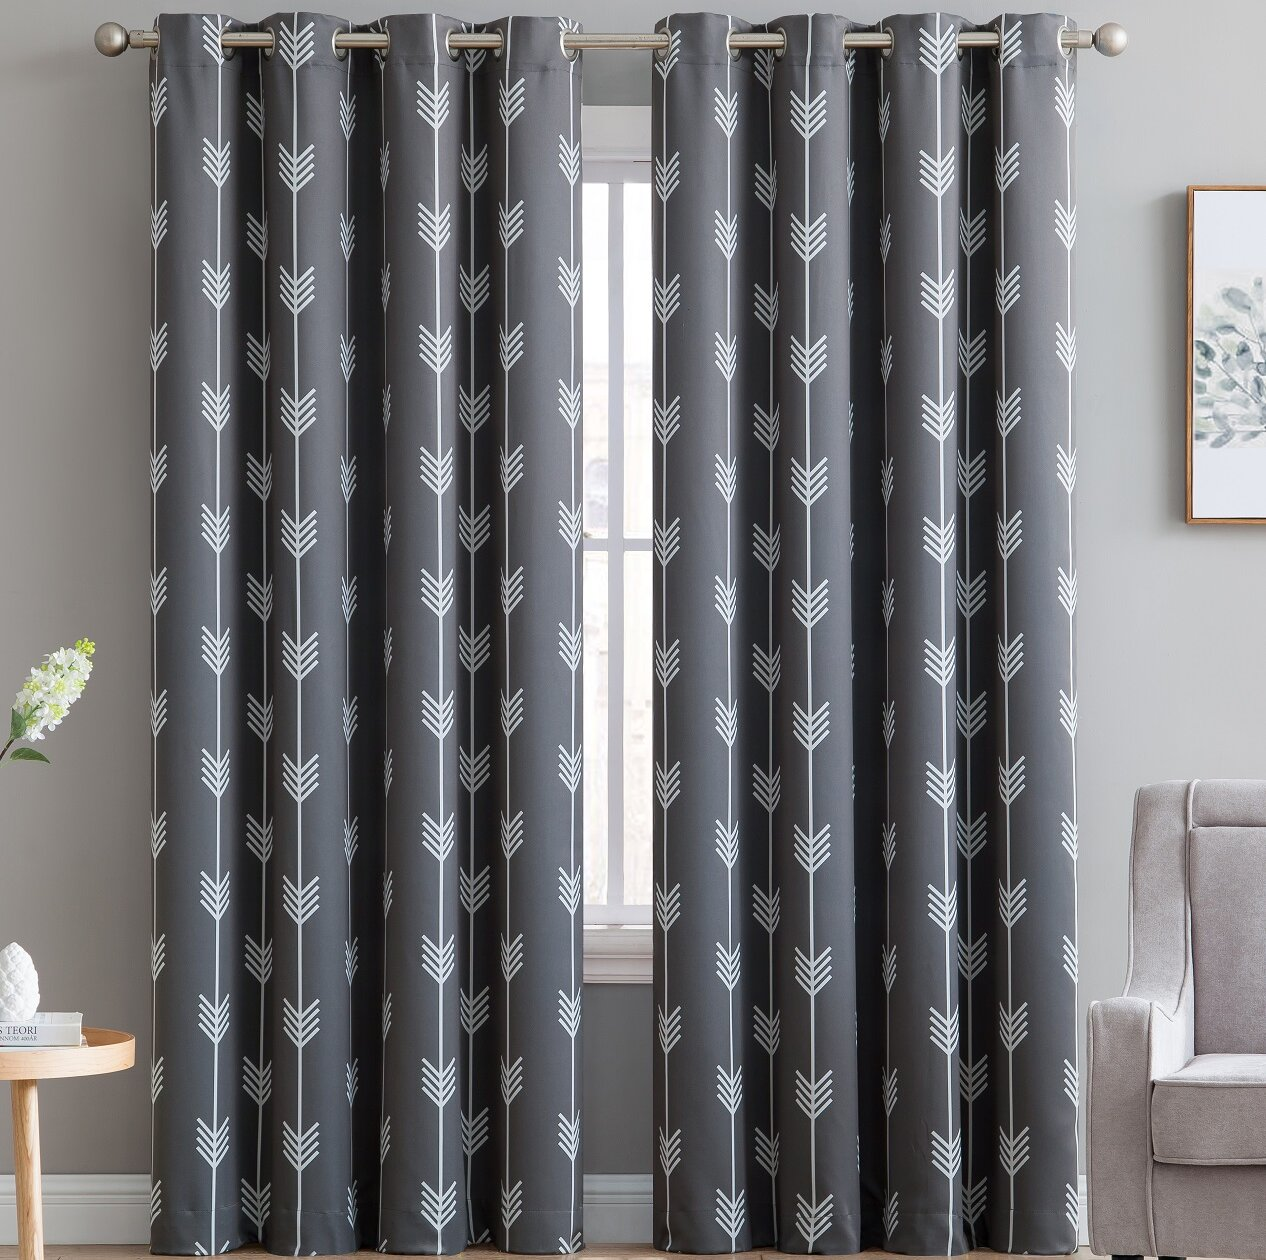 Brendle Geometric Blackout Thermal Grommet Curtain Panels Reviews Allmodern